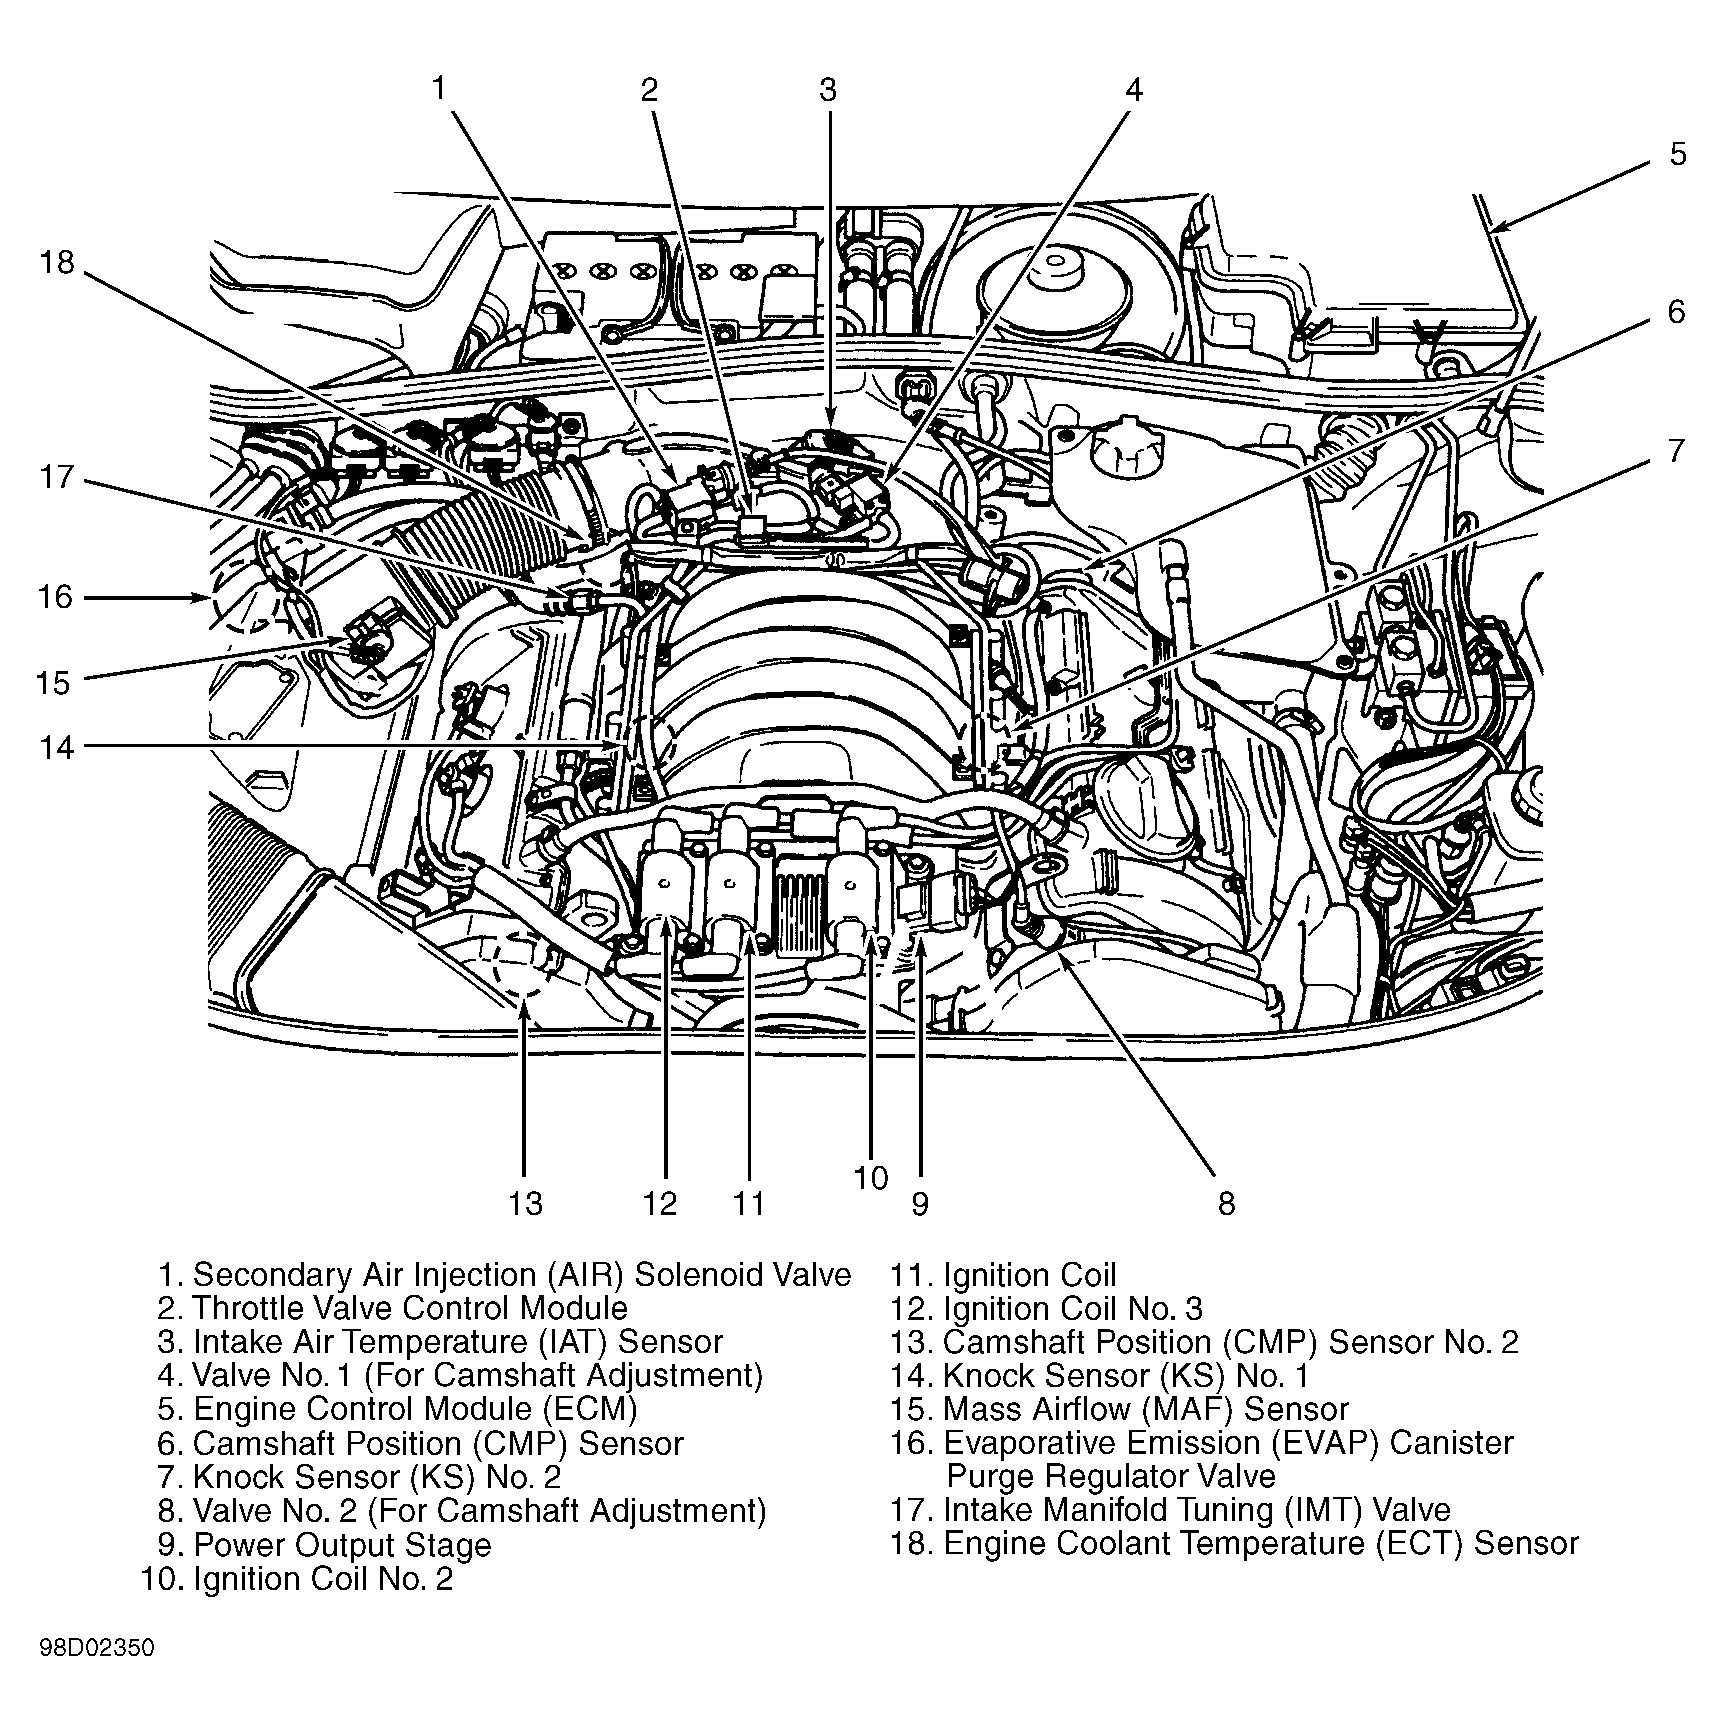 hight resolution of ram 1500 engine diagram wiring diagram list 2013 ram 1500 engine diagram dodge engine diagrams wiring